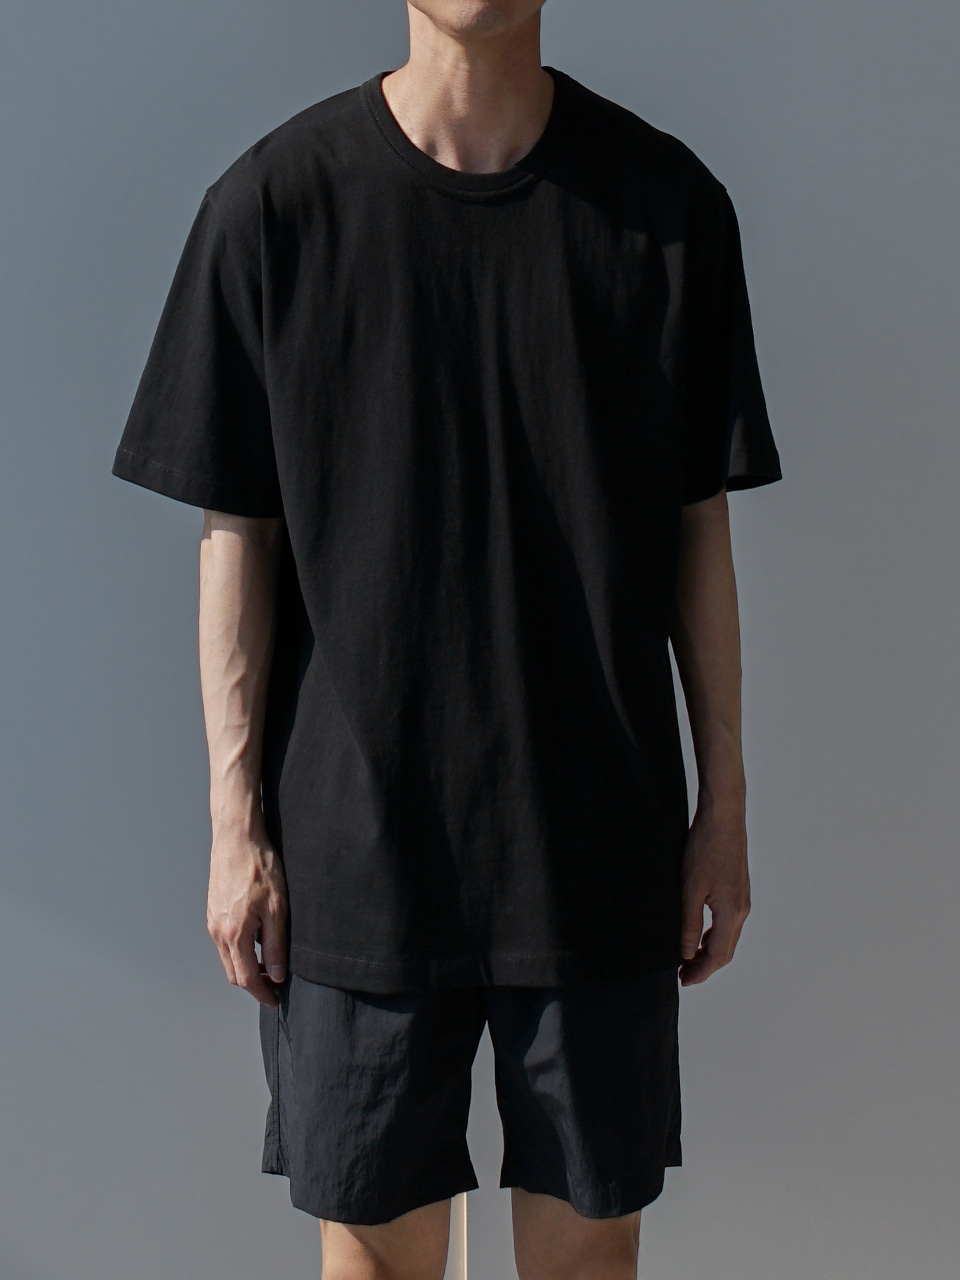 Log Essential Half Tee (10color)